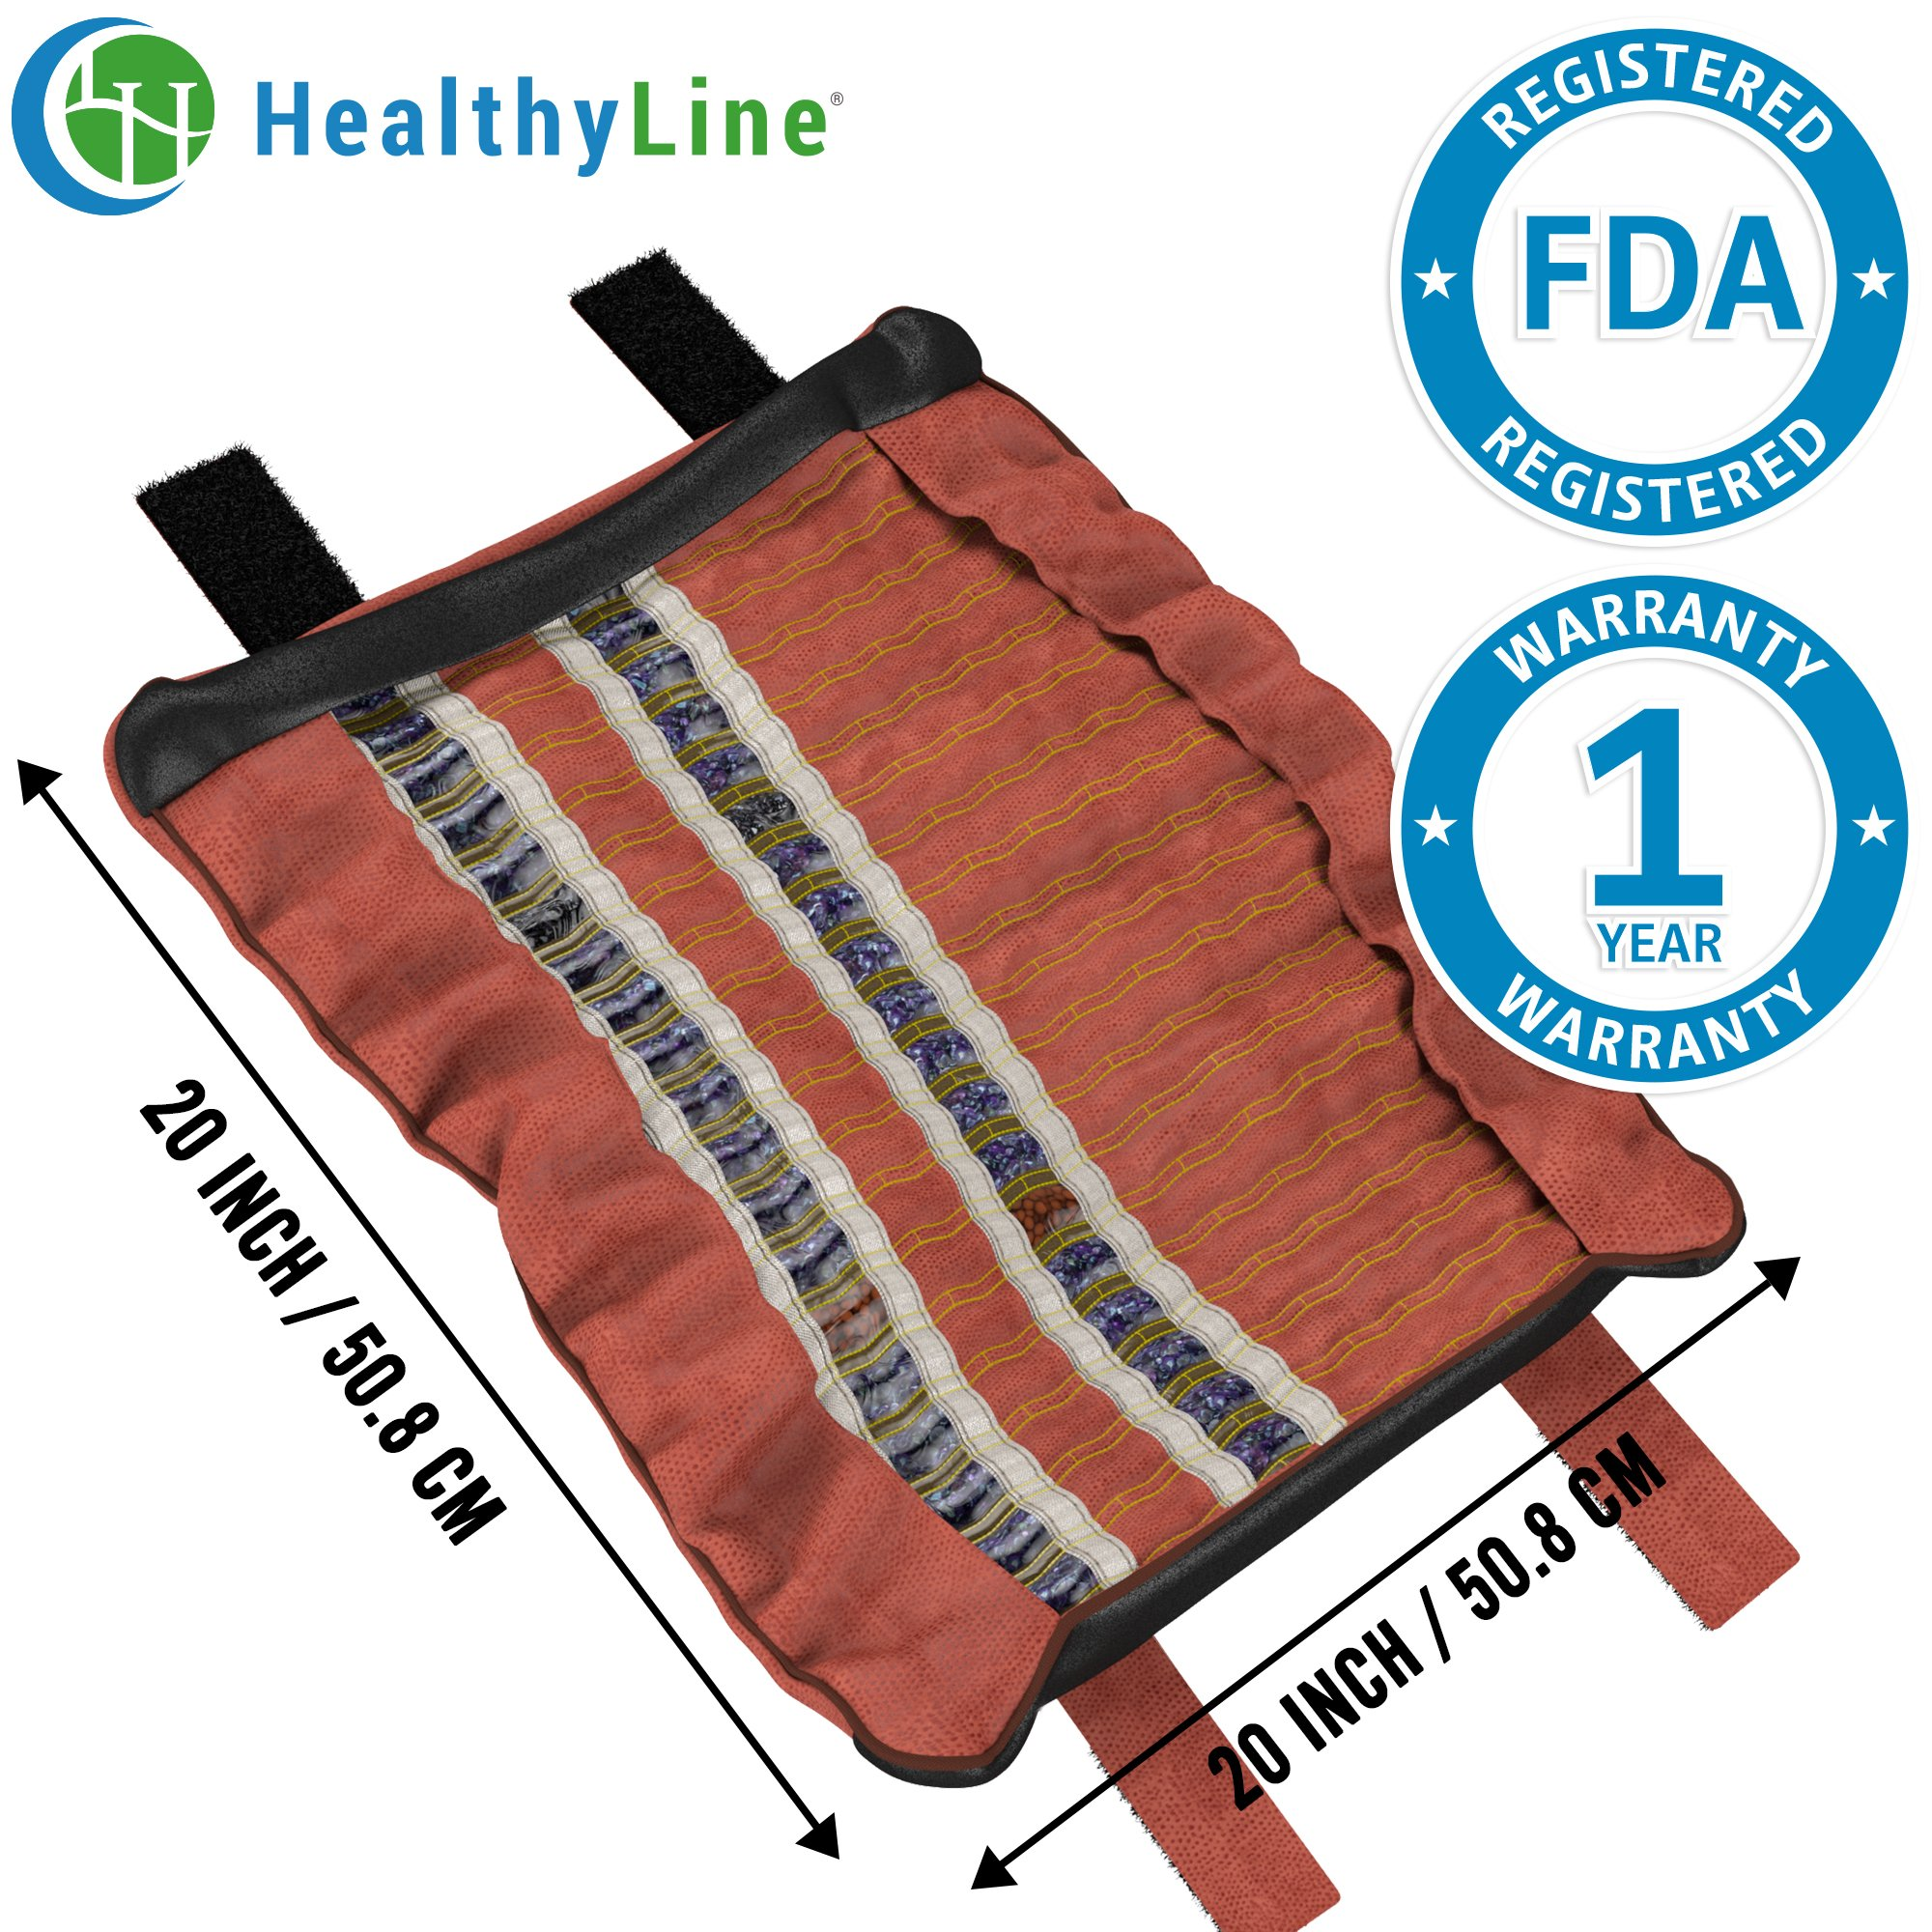 HealthyLine Heating Hand Sleeve | Amethyst, Tourmaline & Obsidian Heat Therapy 20'' x 20'' | Physical Therapy​ ​Heated Negative Ions |​​ US FDA Registered